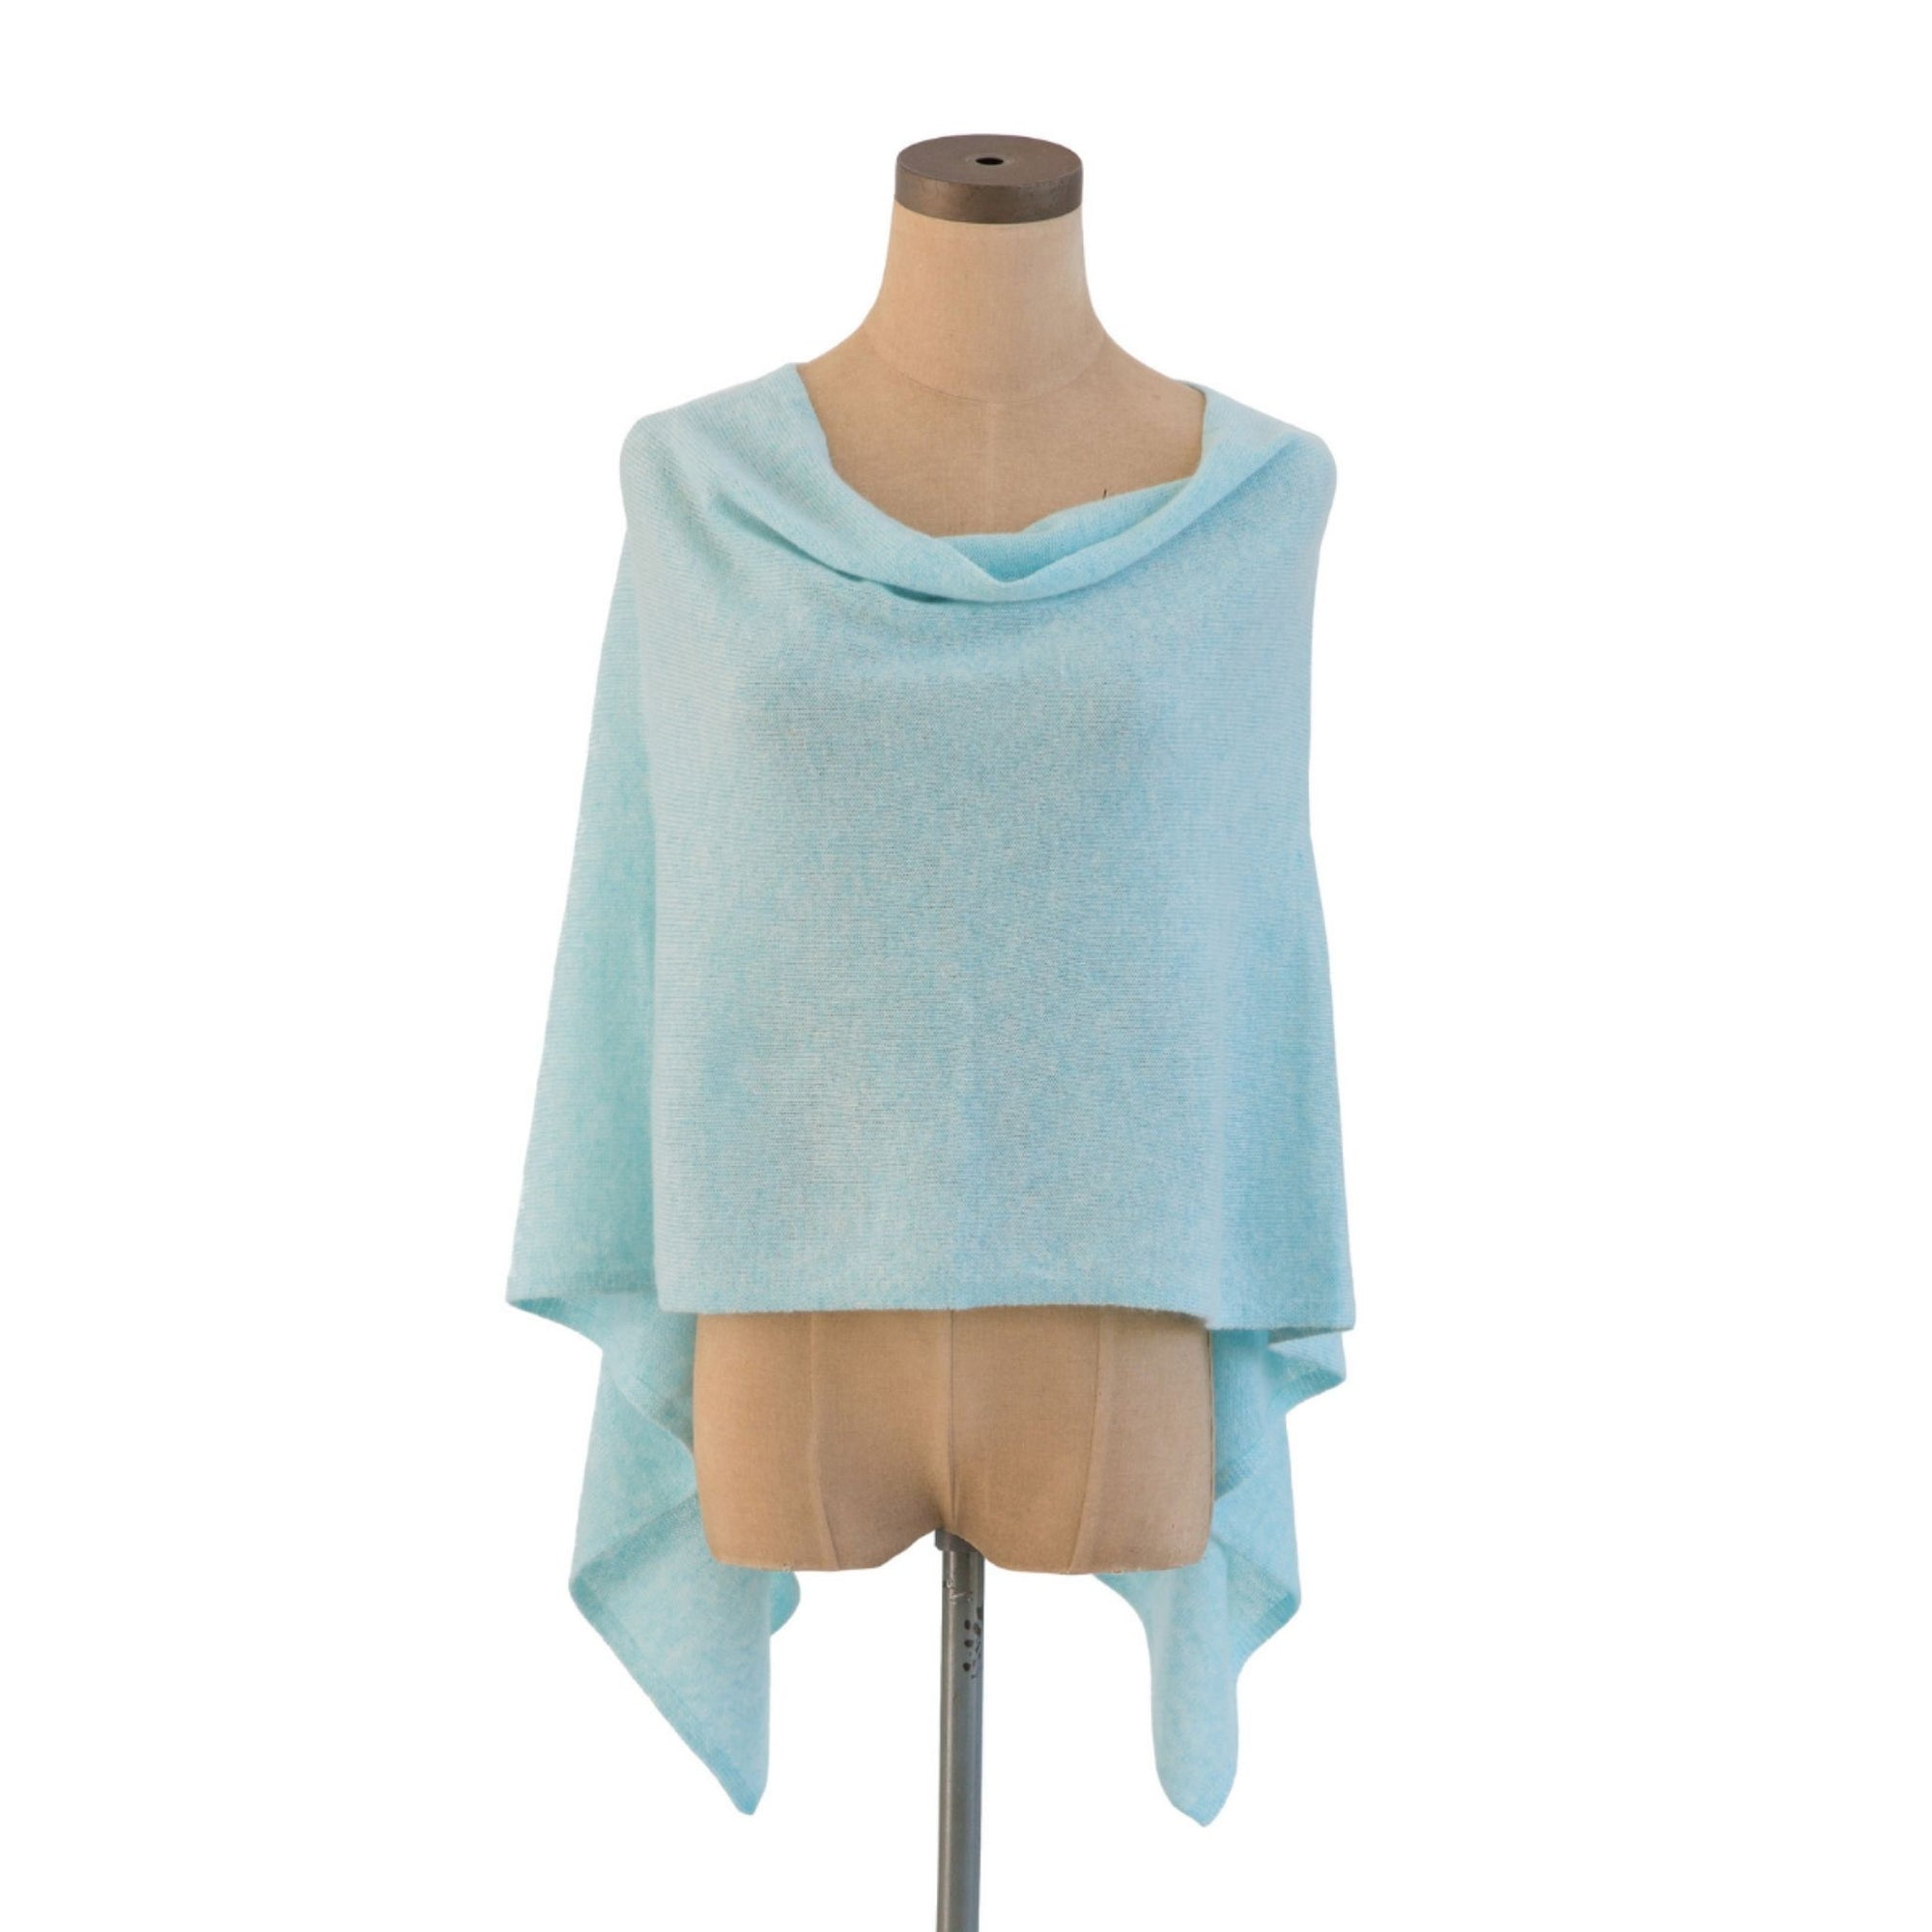 Opal Cashmere Dress Topper